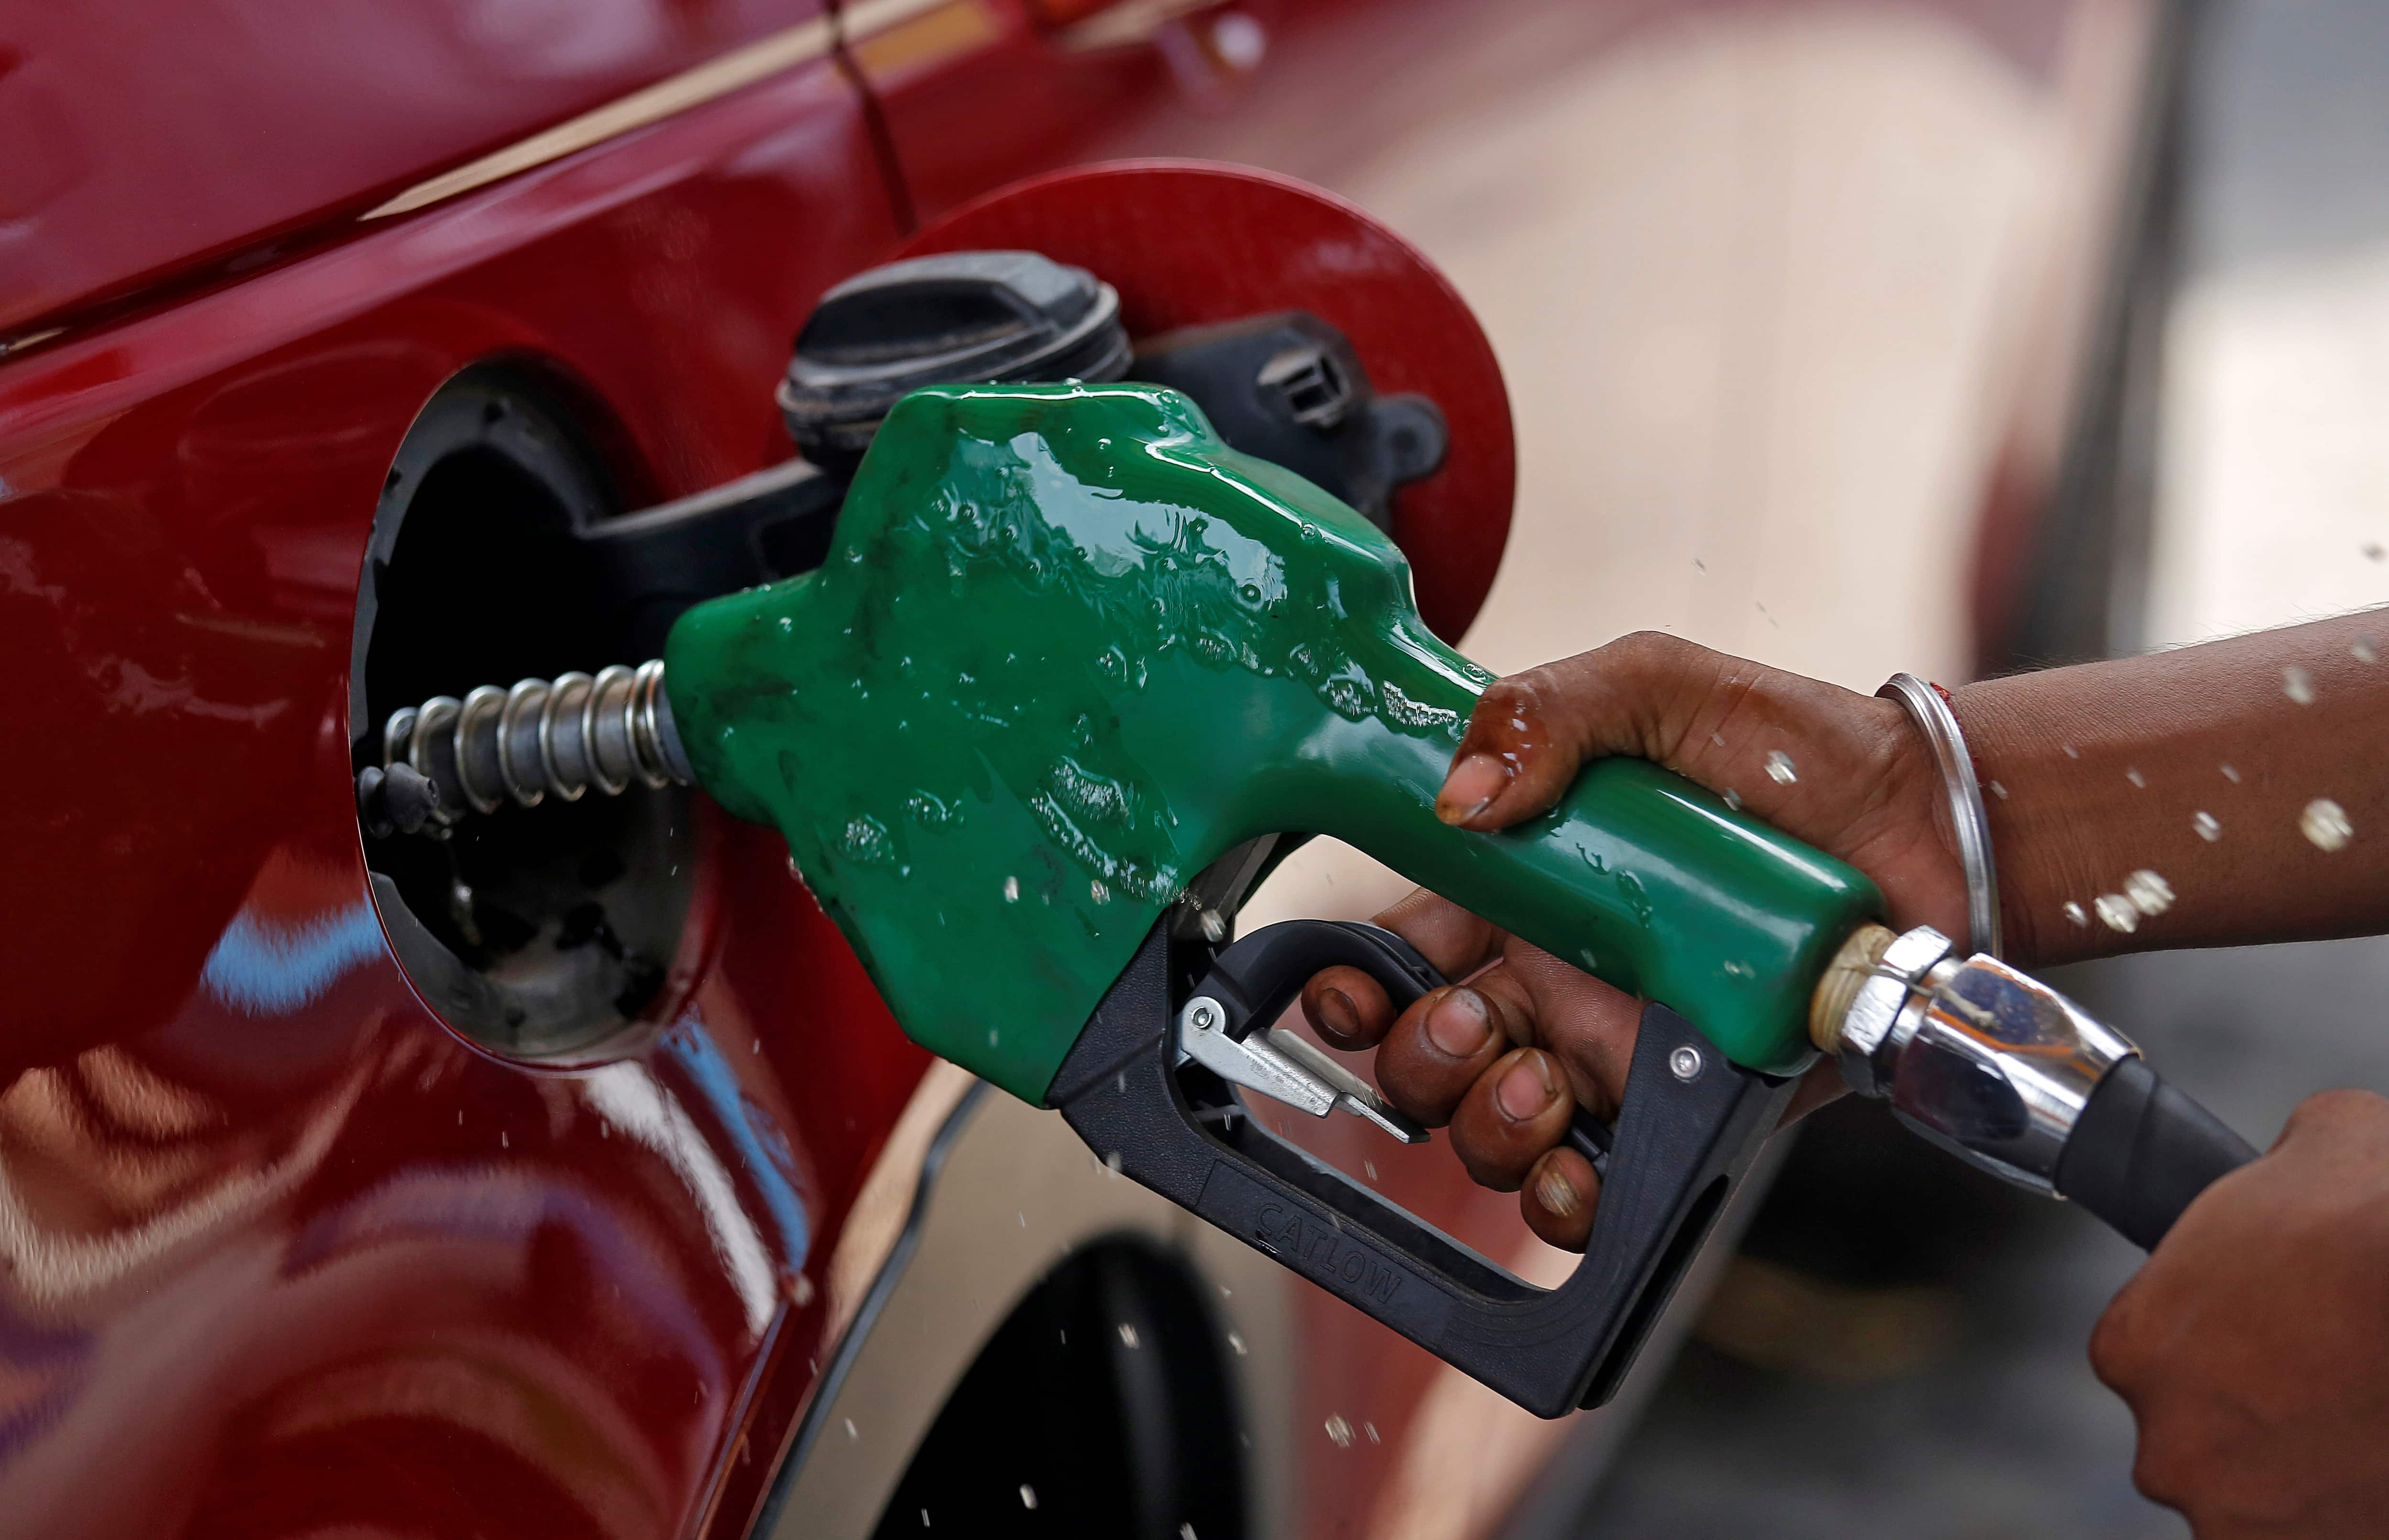 Fuel retail sector: India set to relax rules, may allow